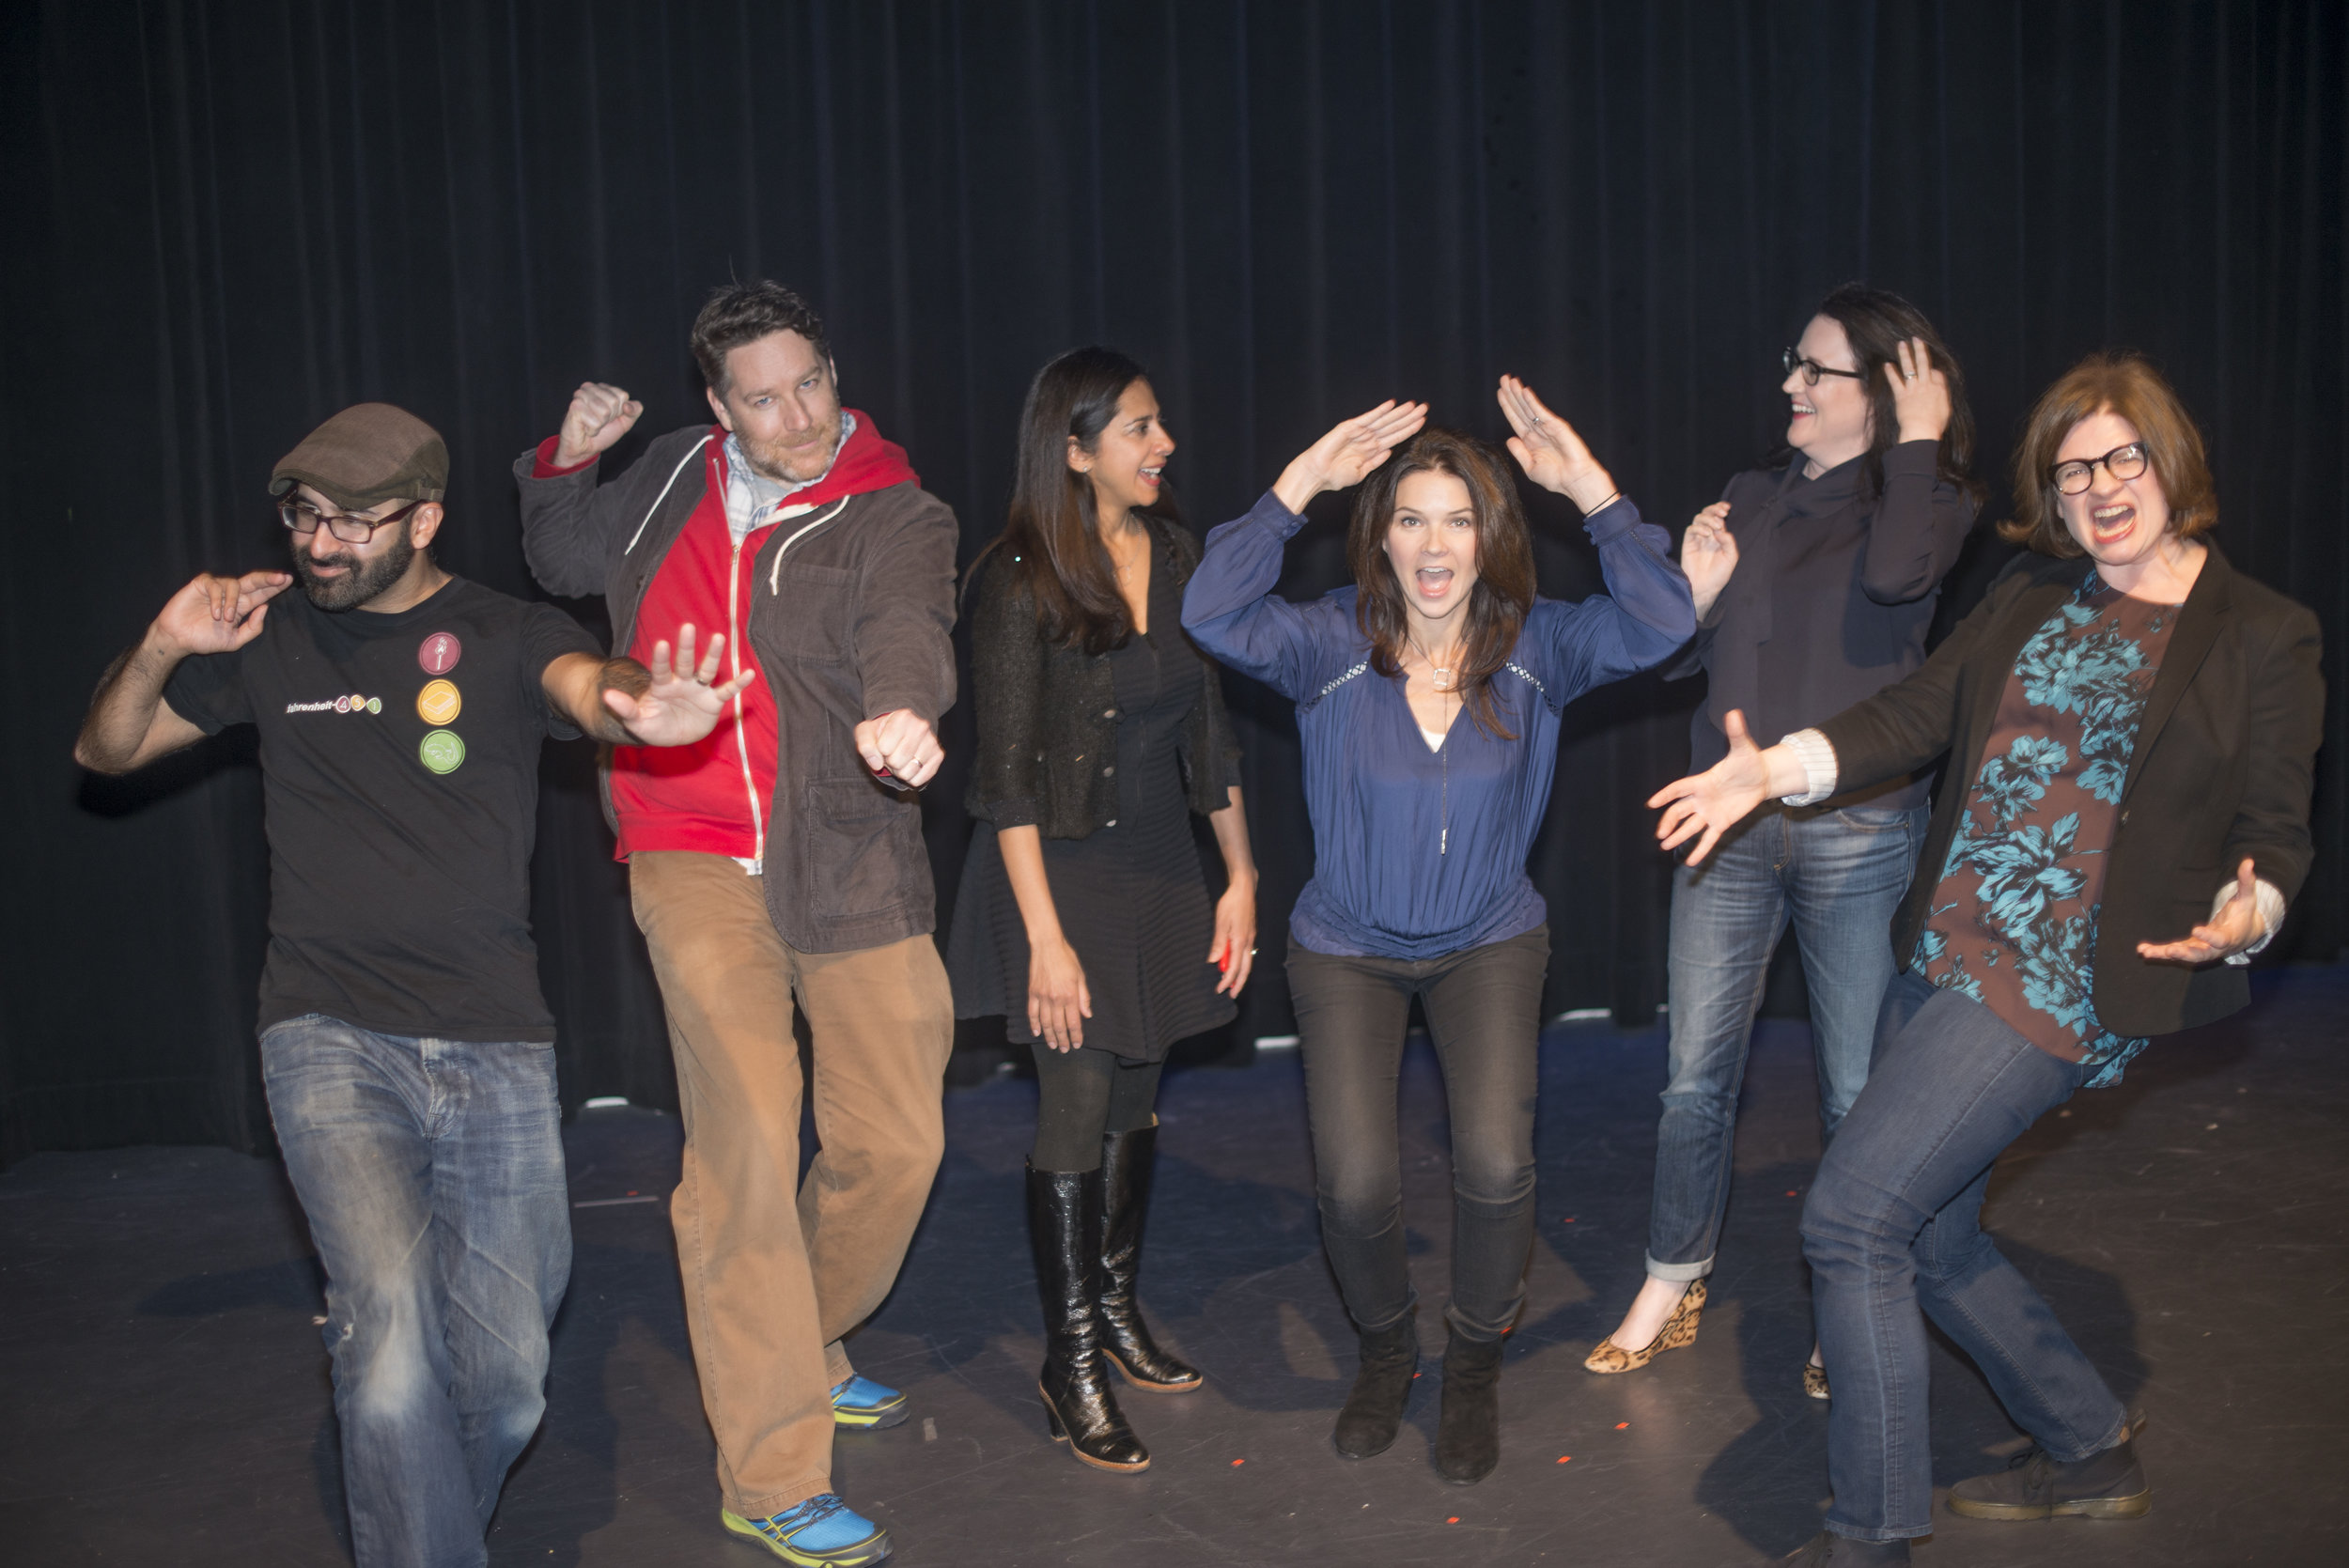 Eric Smith, Kevin Maher, Samira Ahmed, Amy Wilson, Helen Ellis and Emmy Laybourne got very aggressive before the show on January 19, 2017.